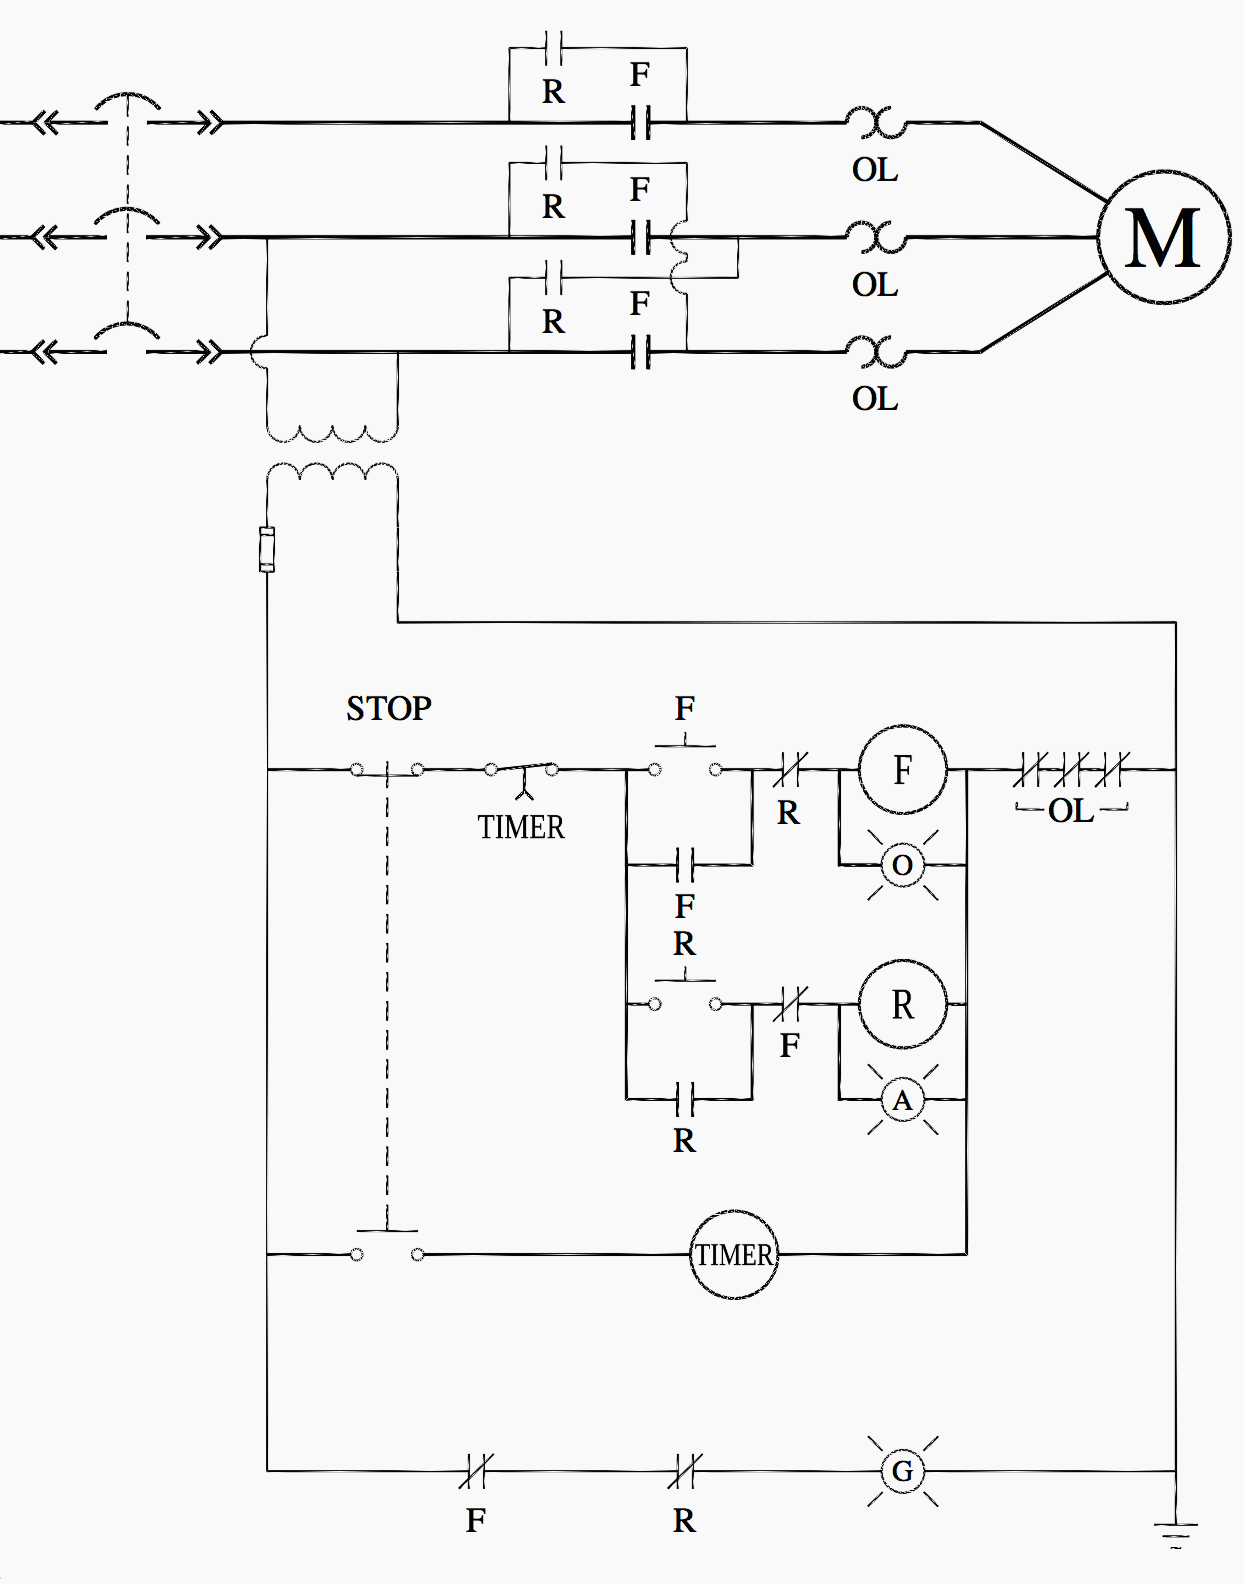 hight resolution of ladder logic for special motor control circuits jogging and motor car diagram motor starter ladder diagram